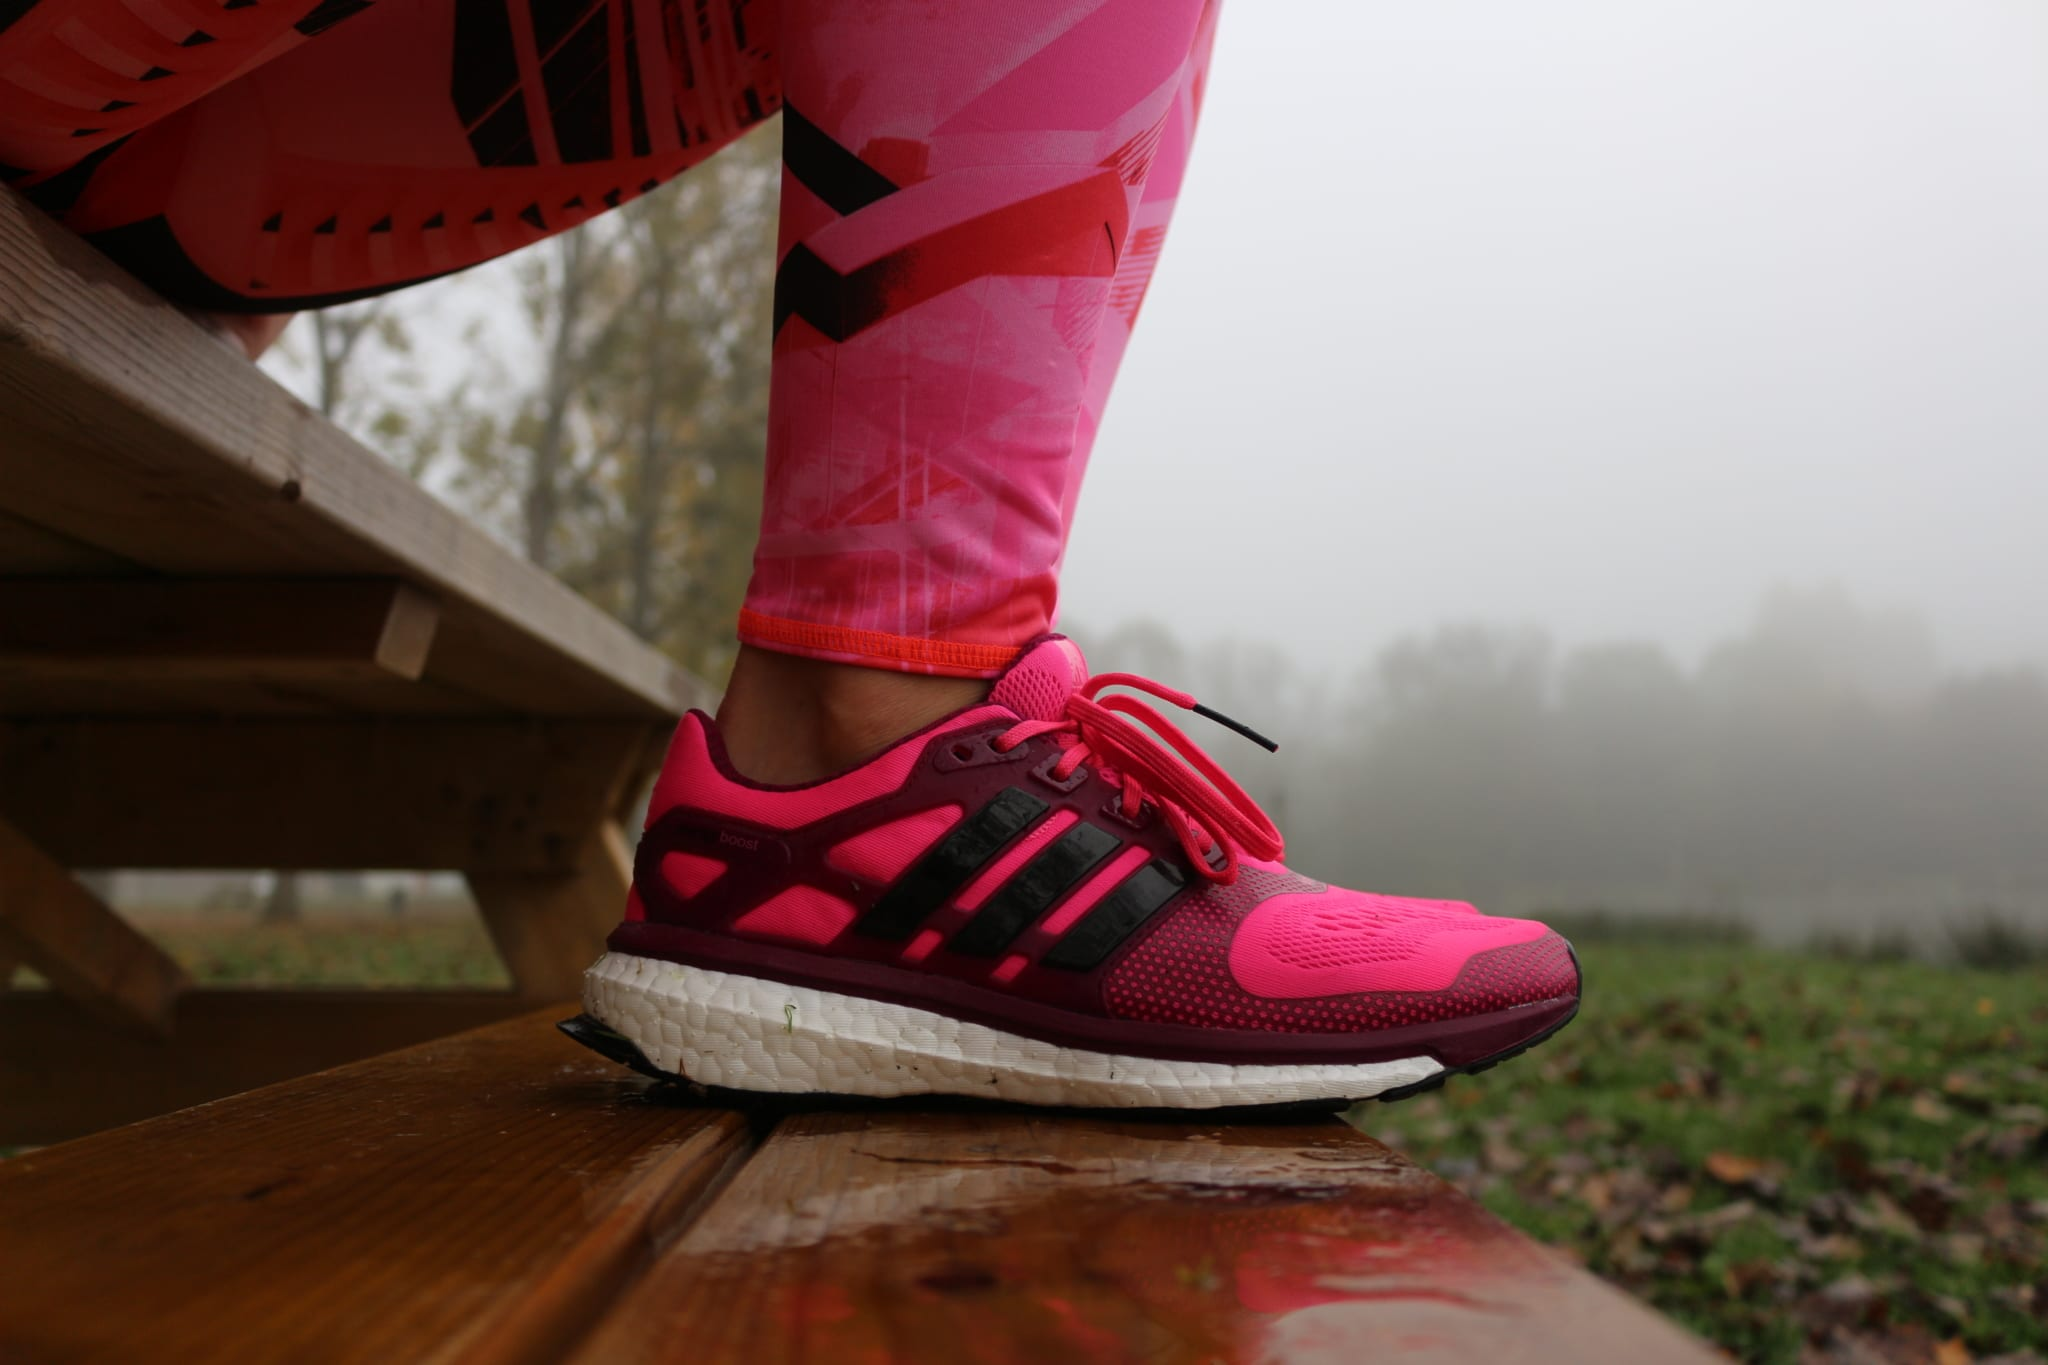 Jolie Foulée TEST : ADIDAS ENERGY BOOST 2